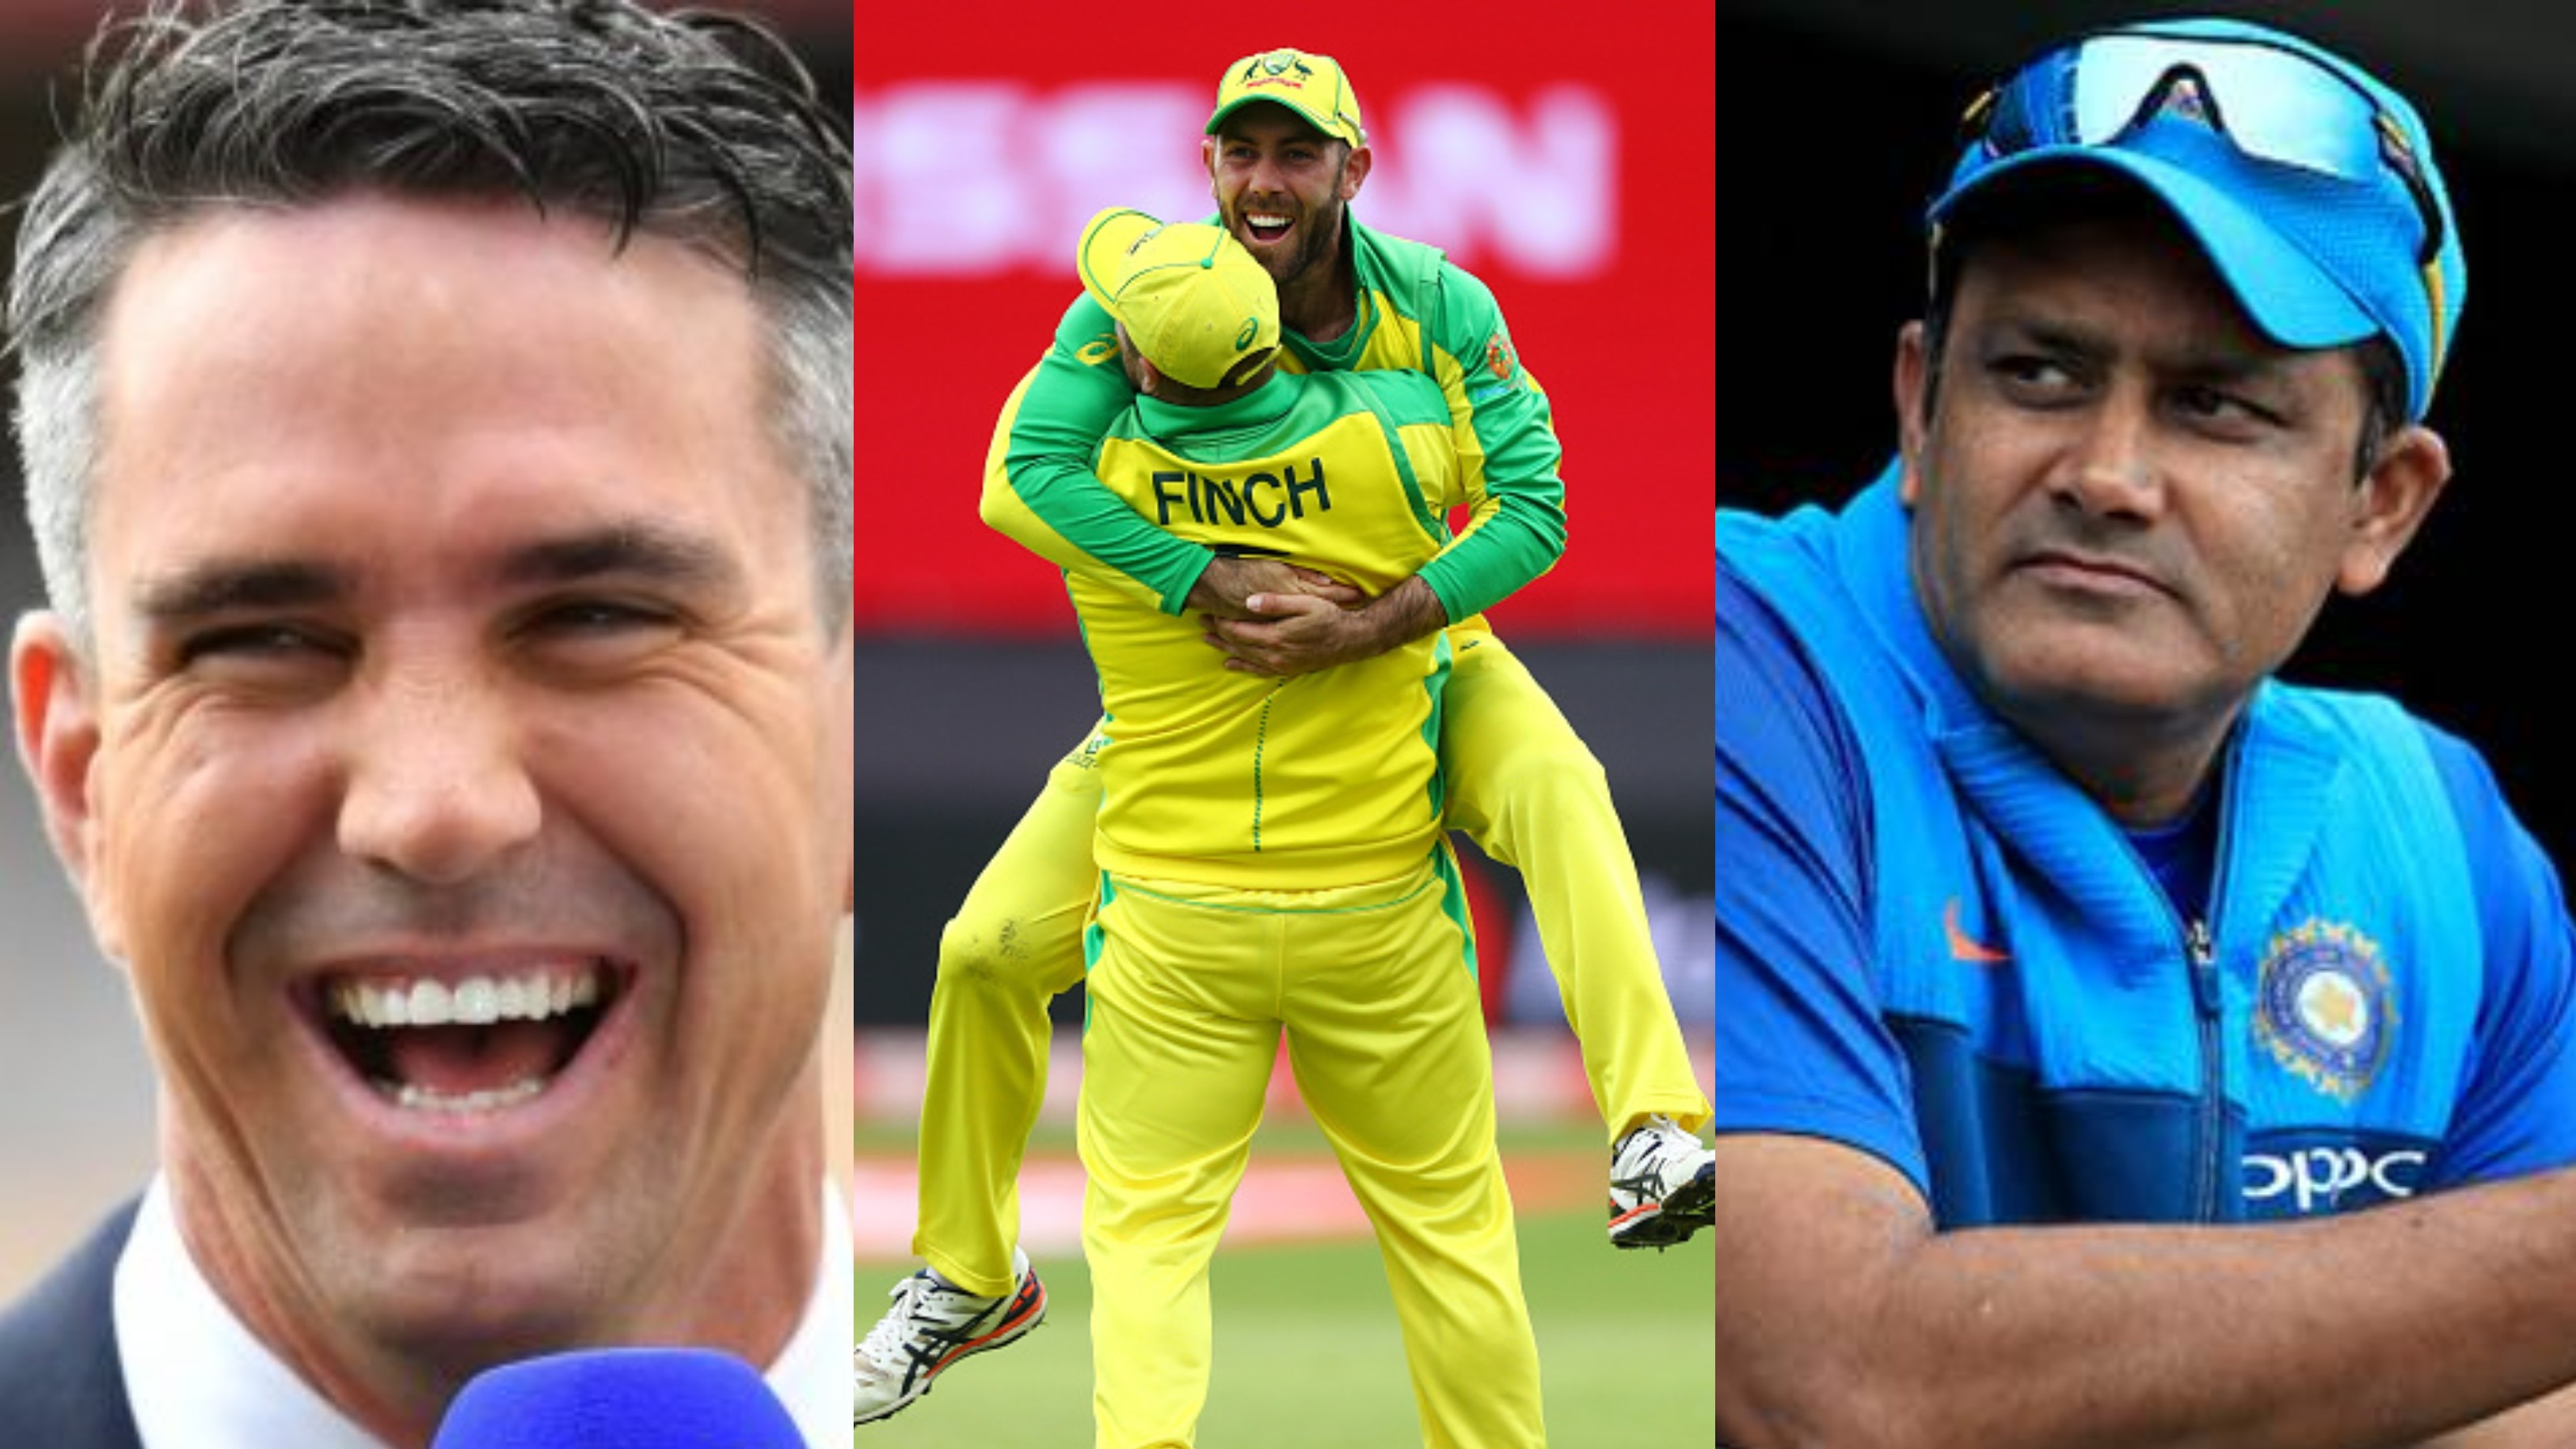 CWC 2019: Kevin Pietersen and Anil Kumble hail Aaron Finch for his bold DRS call against Pakistan